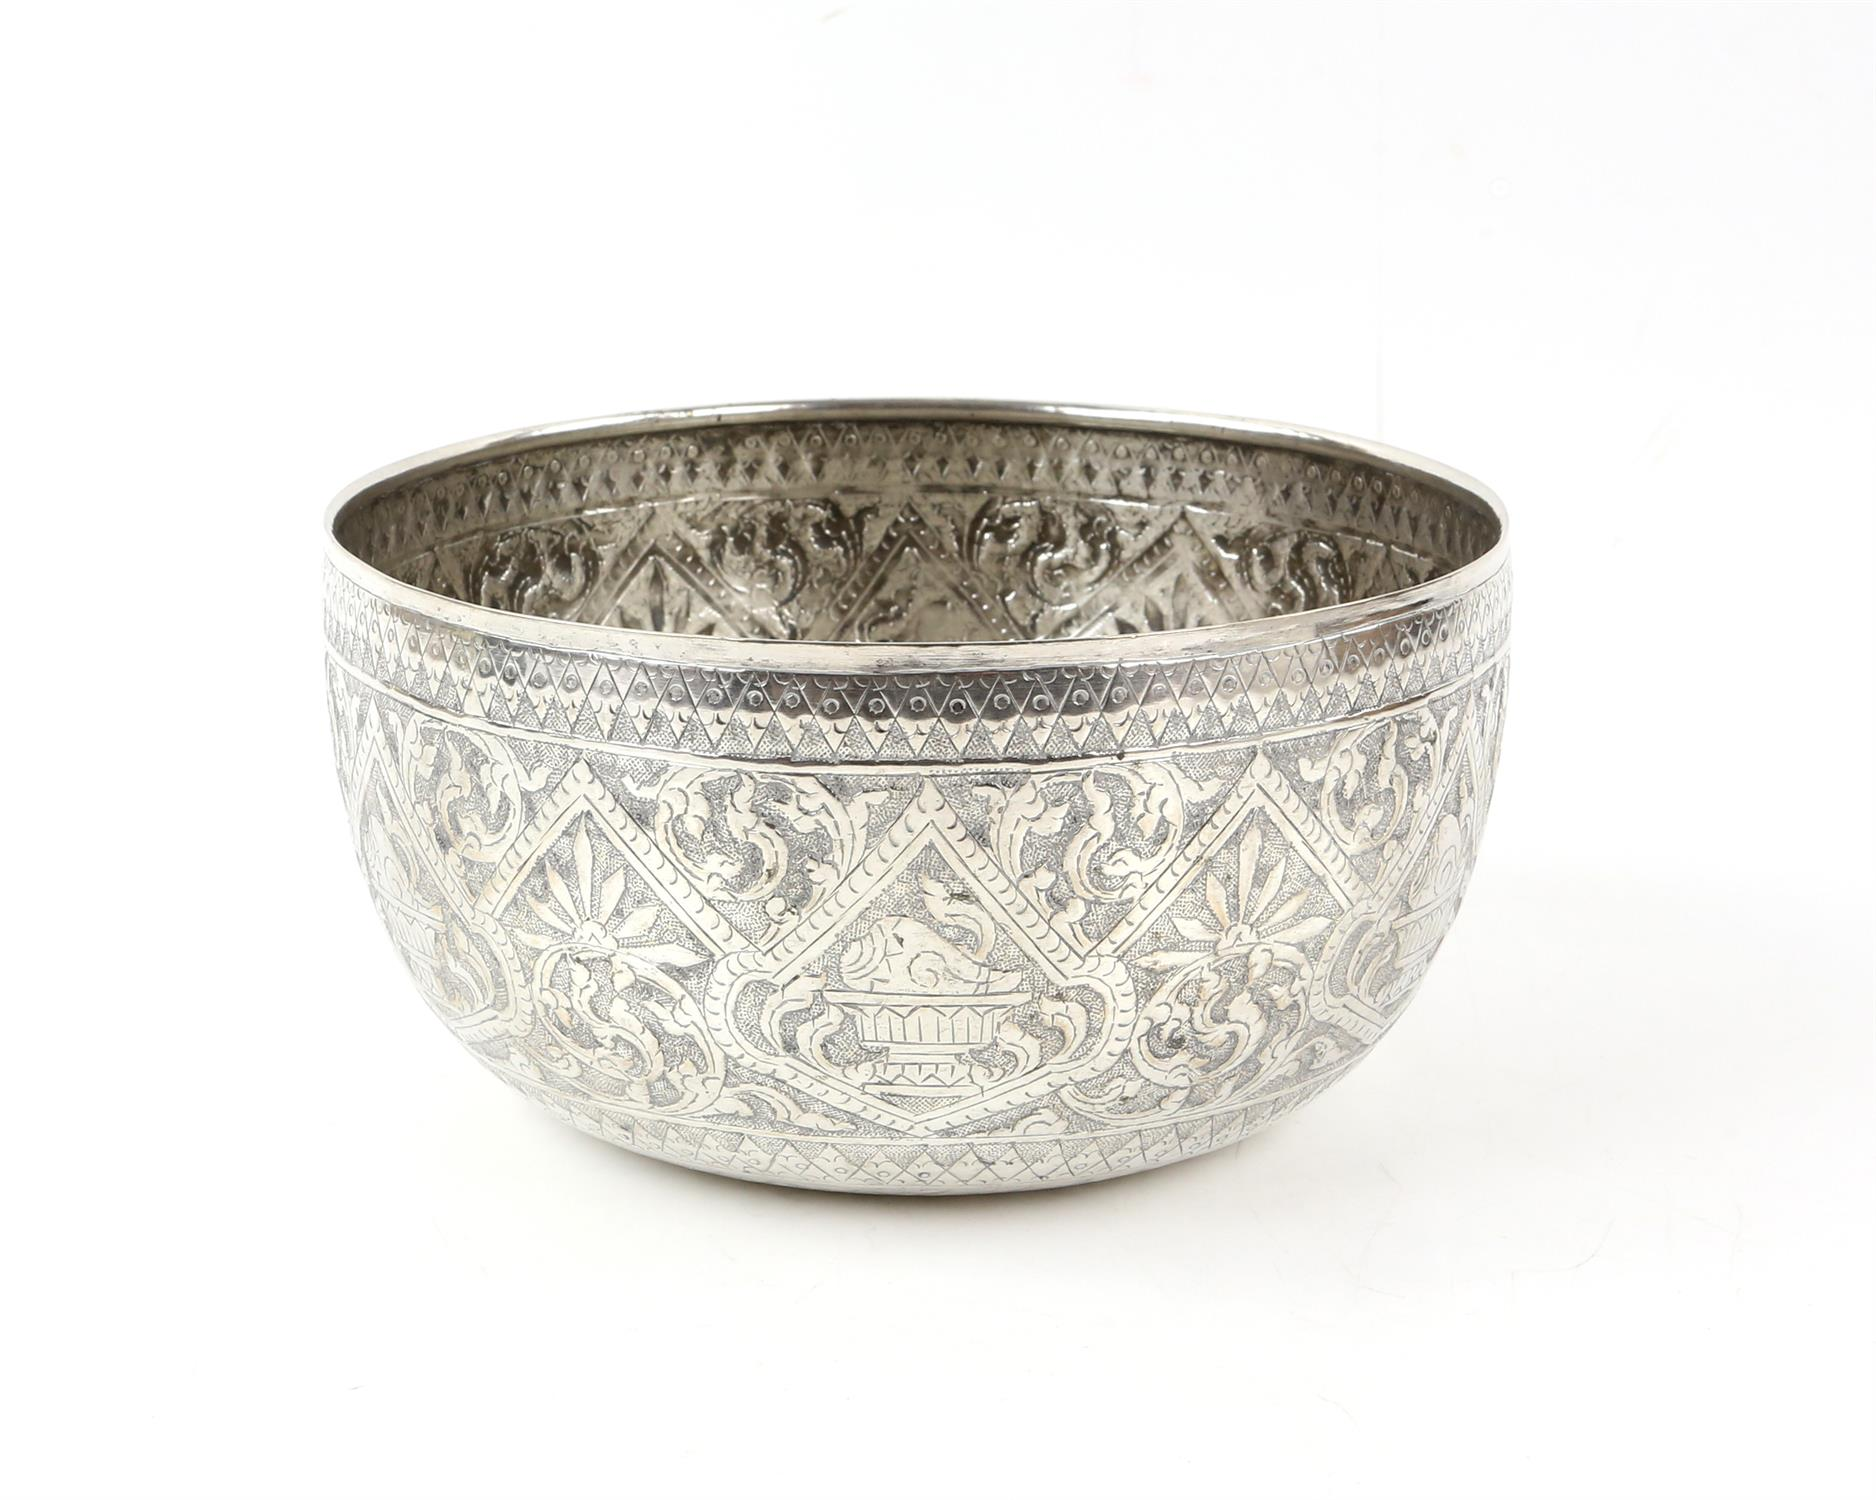 Far Eastern silver bowl with hammered and embossed decoration of repeating shells on plinths, 17.